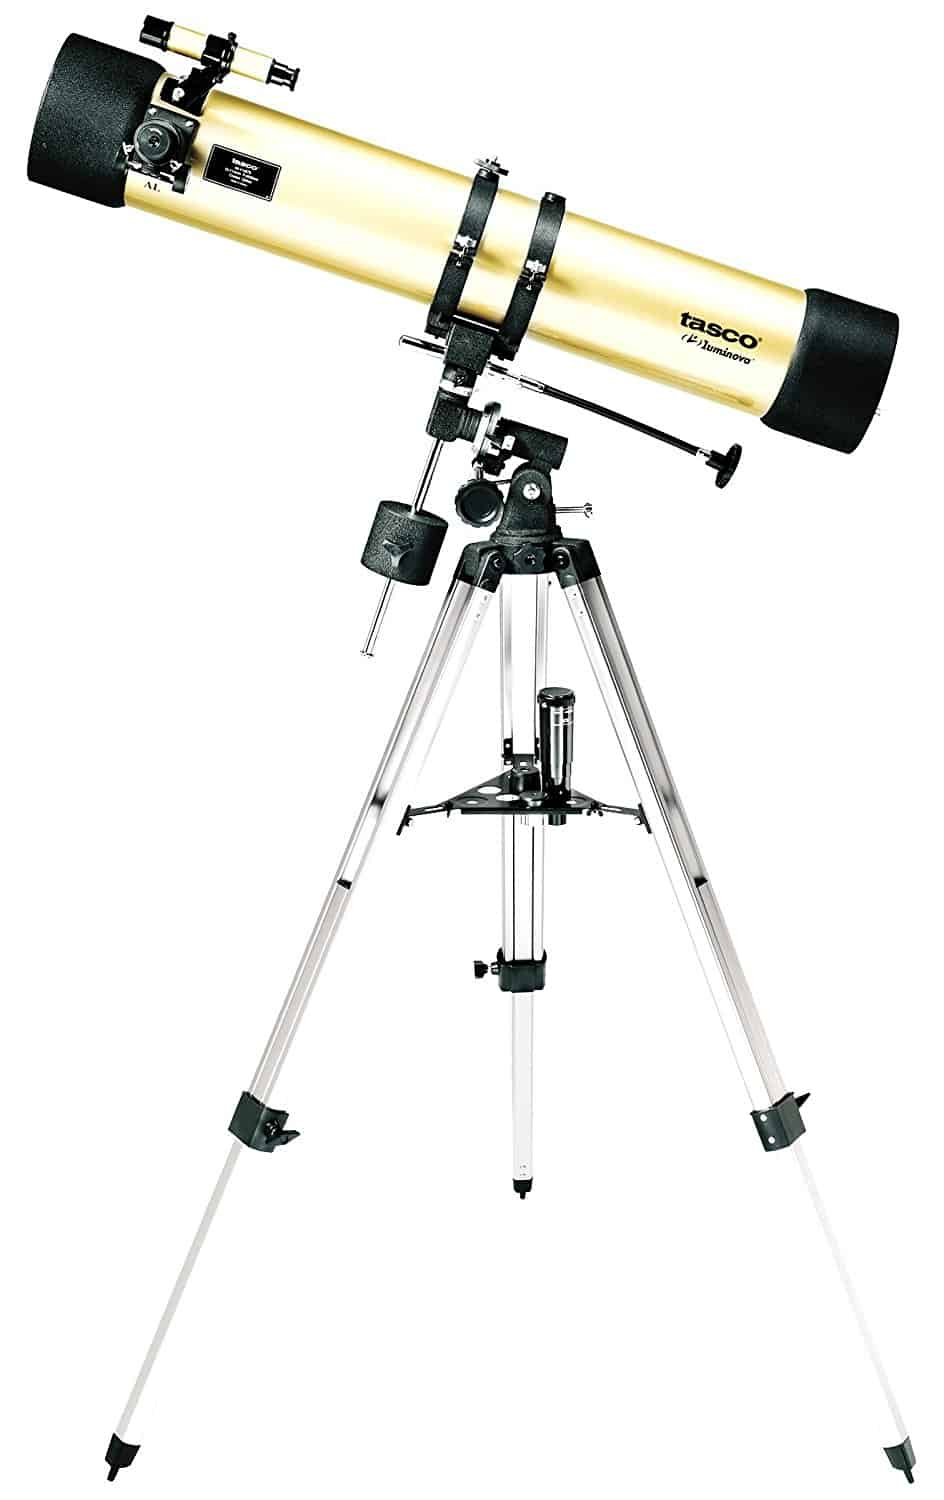 Tasco Luminova Reflector Telescope review